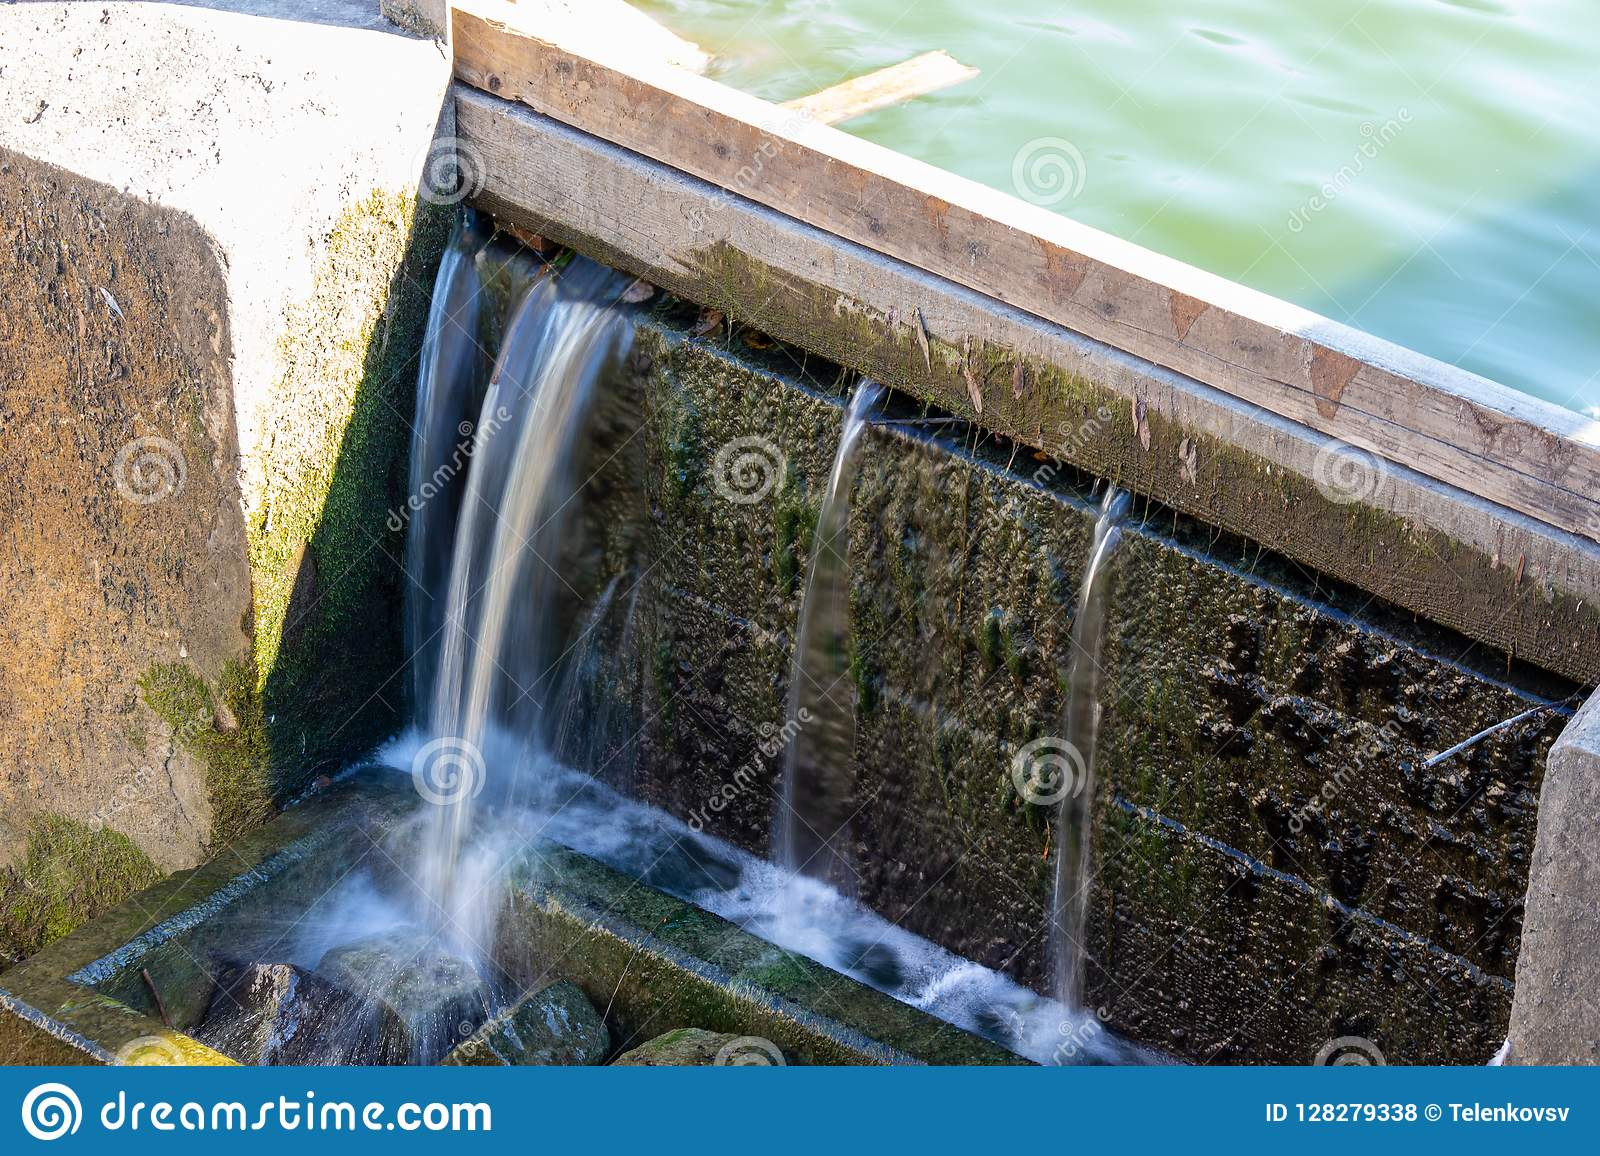 Small Artificial Waterfall Water From The Pond Pours Through The